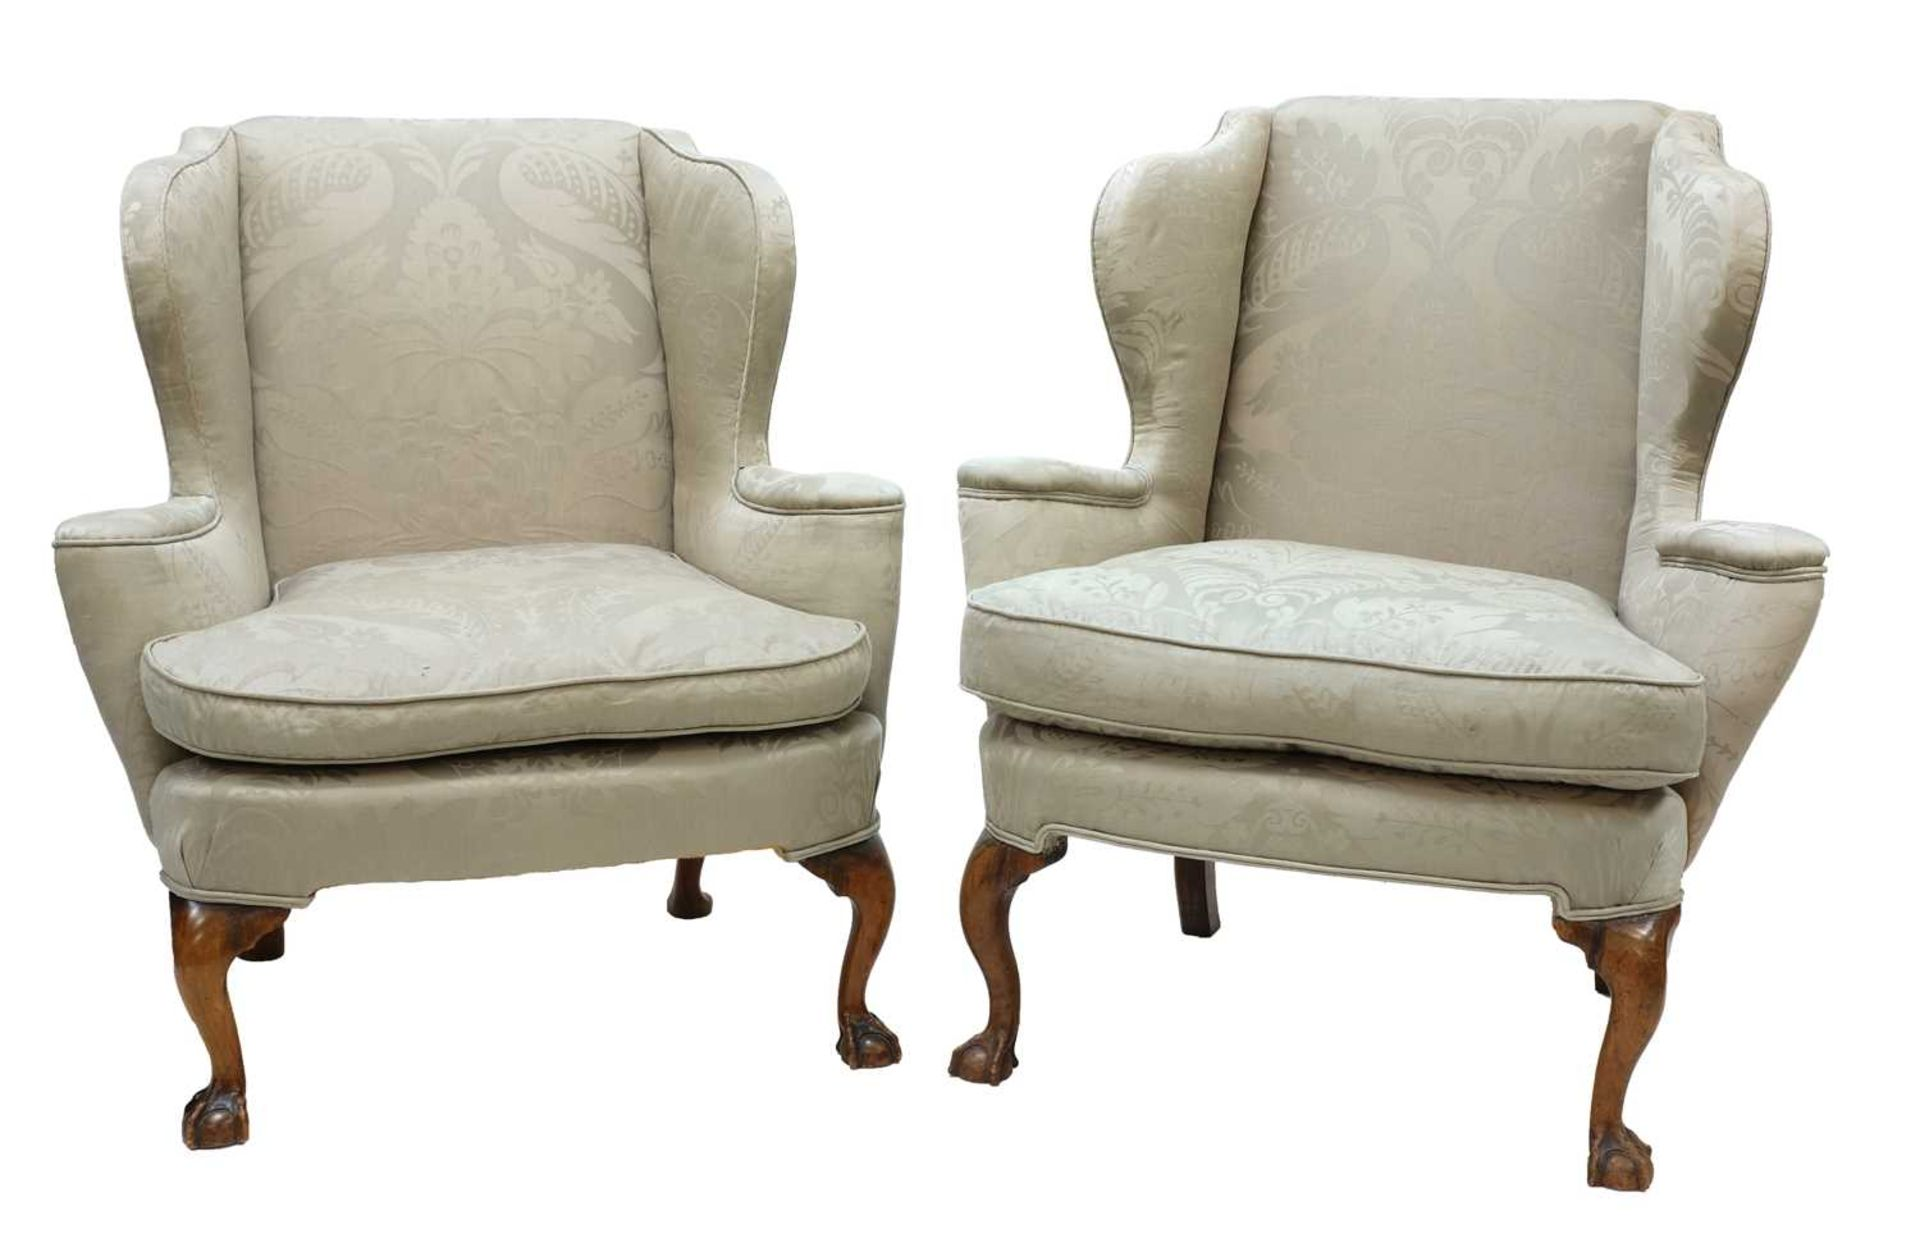 A closely matched pair of George III-style wing back armchairs,